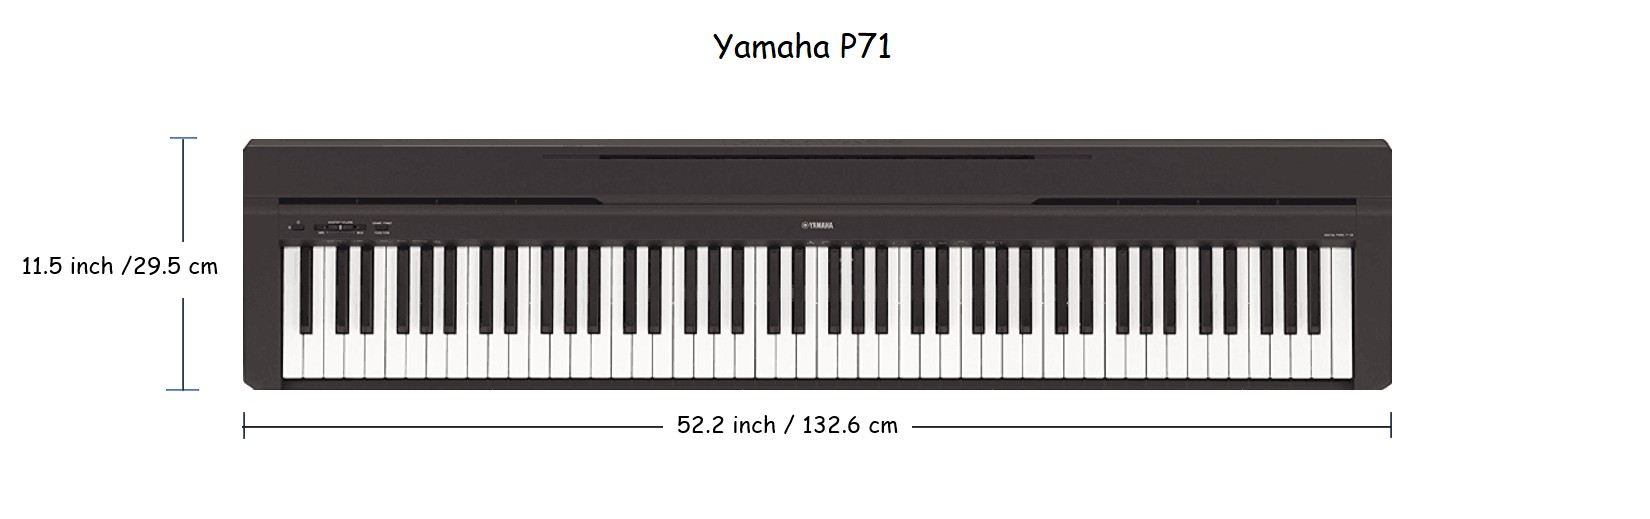 dimension Yamaha digital piano